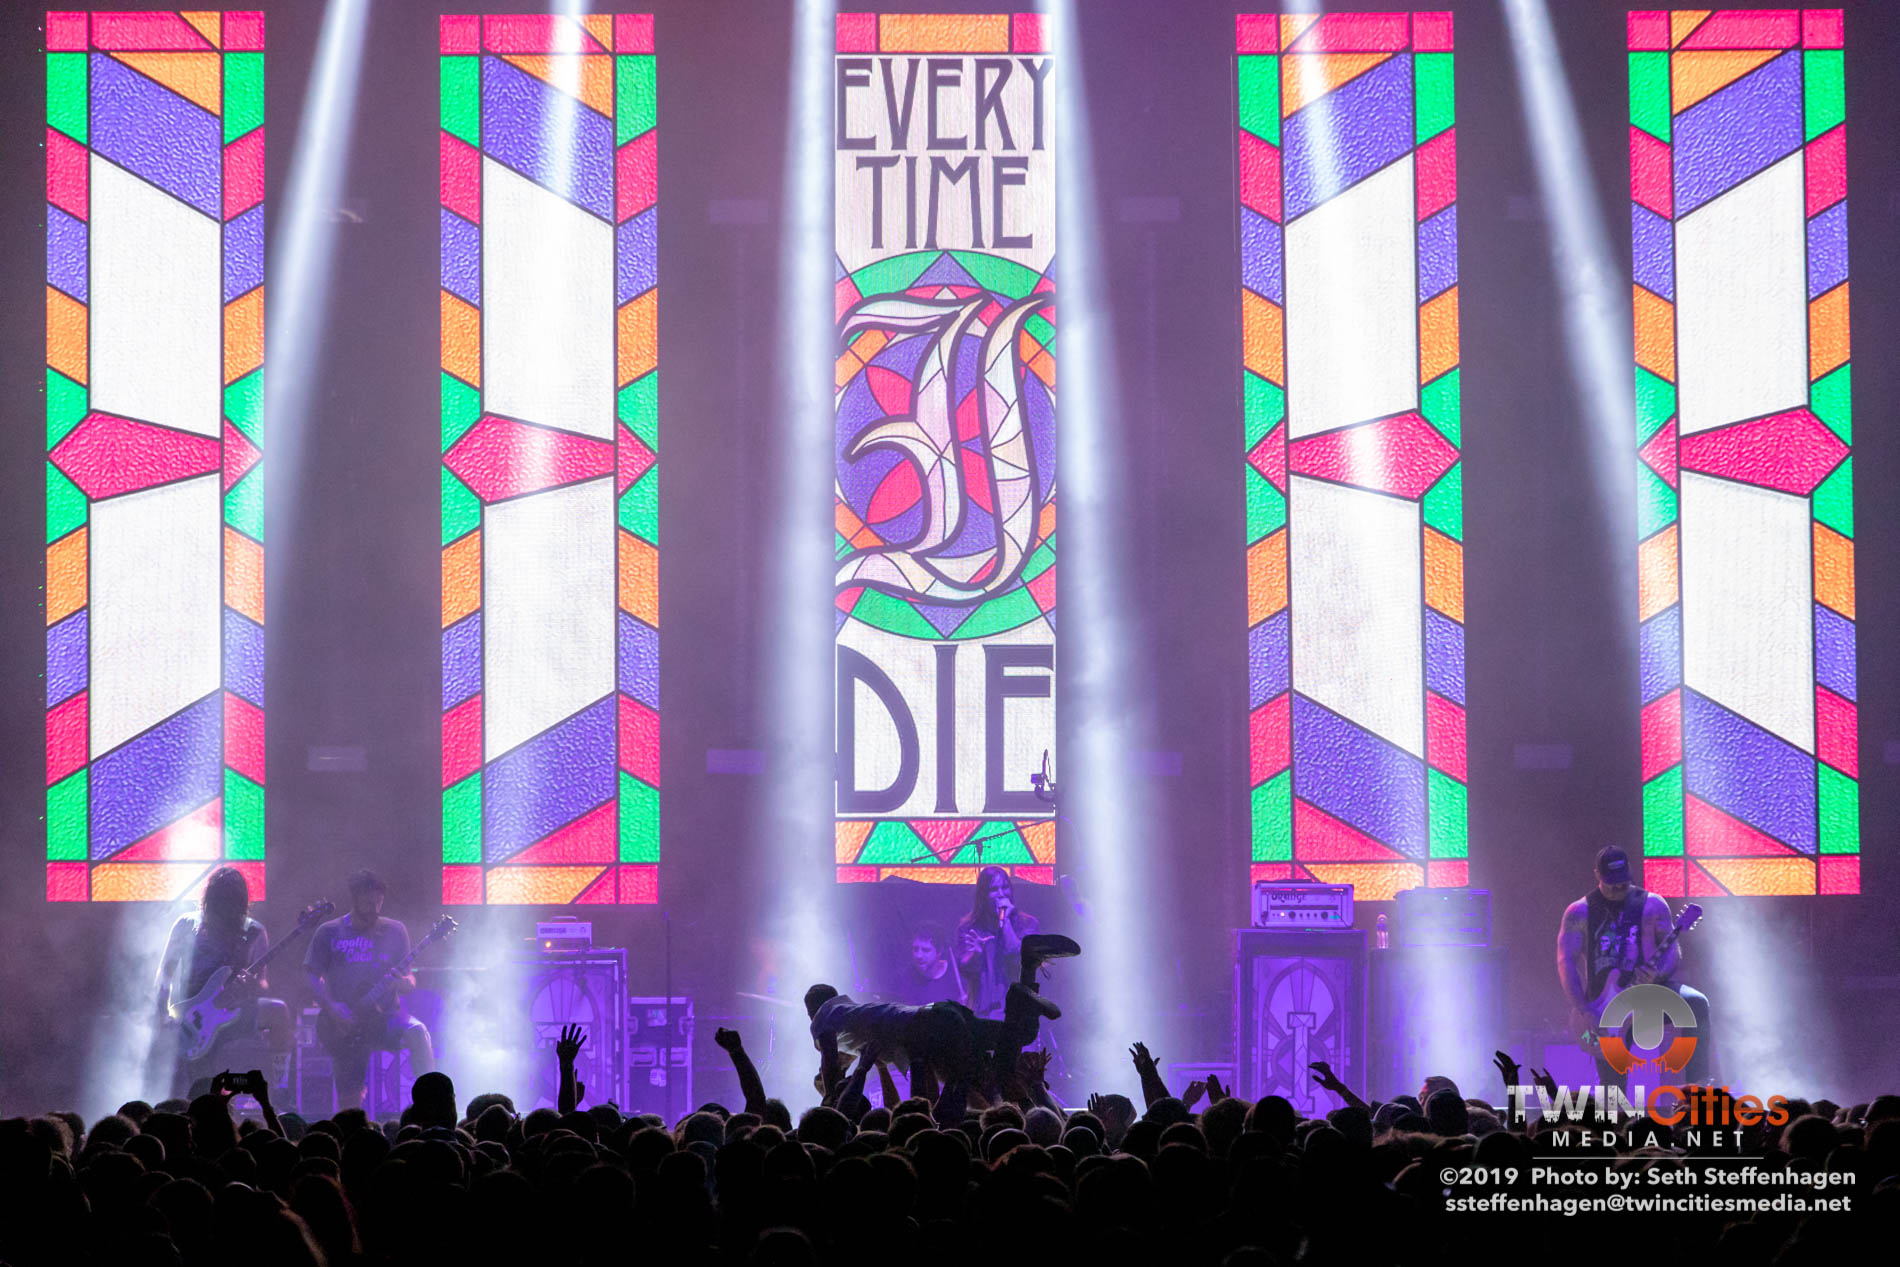 June 15, 2019 - Minneapolis, Minnesota, United States -  Every Time I Die live in concert at The Armory opening for Mastodon and Coheed & Cambria.  (Photo by Seth Steffenhagen/Steffenhagen Photography)